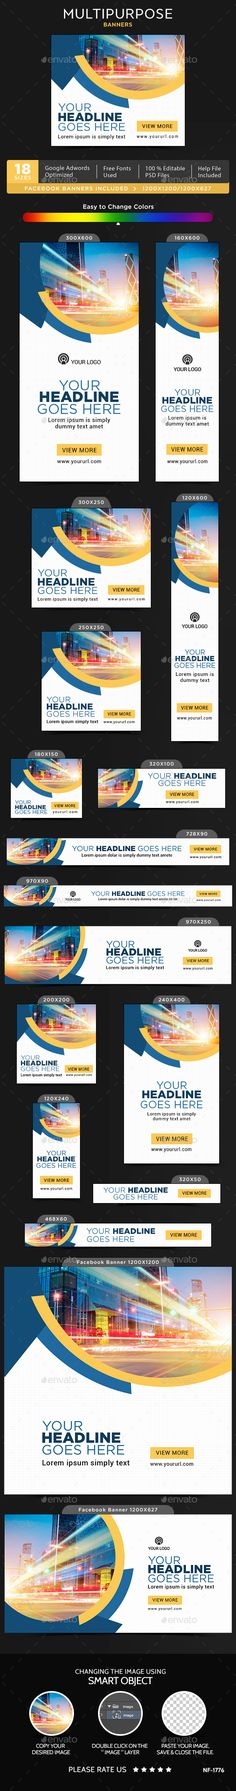 Multipurpose Banners — Photoshop PSD #coupon #discount • Available here → https://graphicriver.net/item/multipurpose-banners/19909696?ref=pxcr